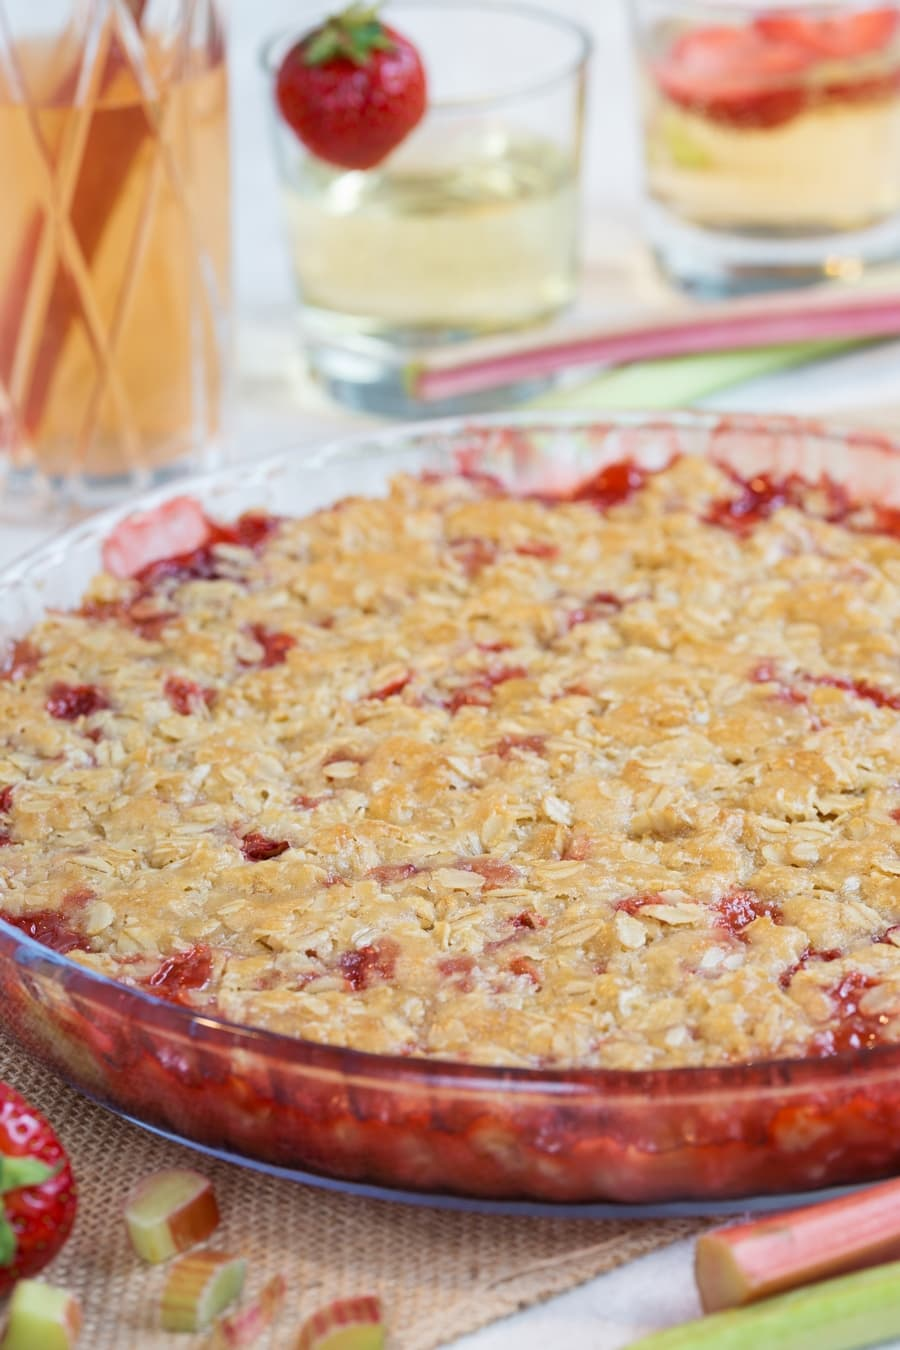 Strawberry rhubarb crisp in a see-through pyrex pan.